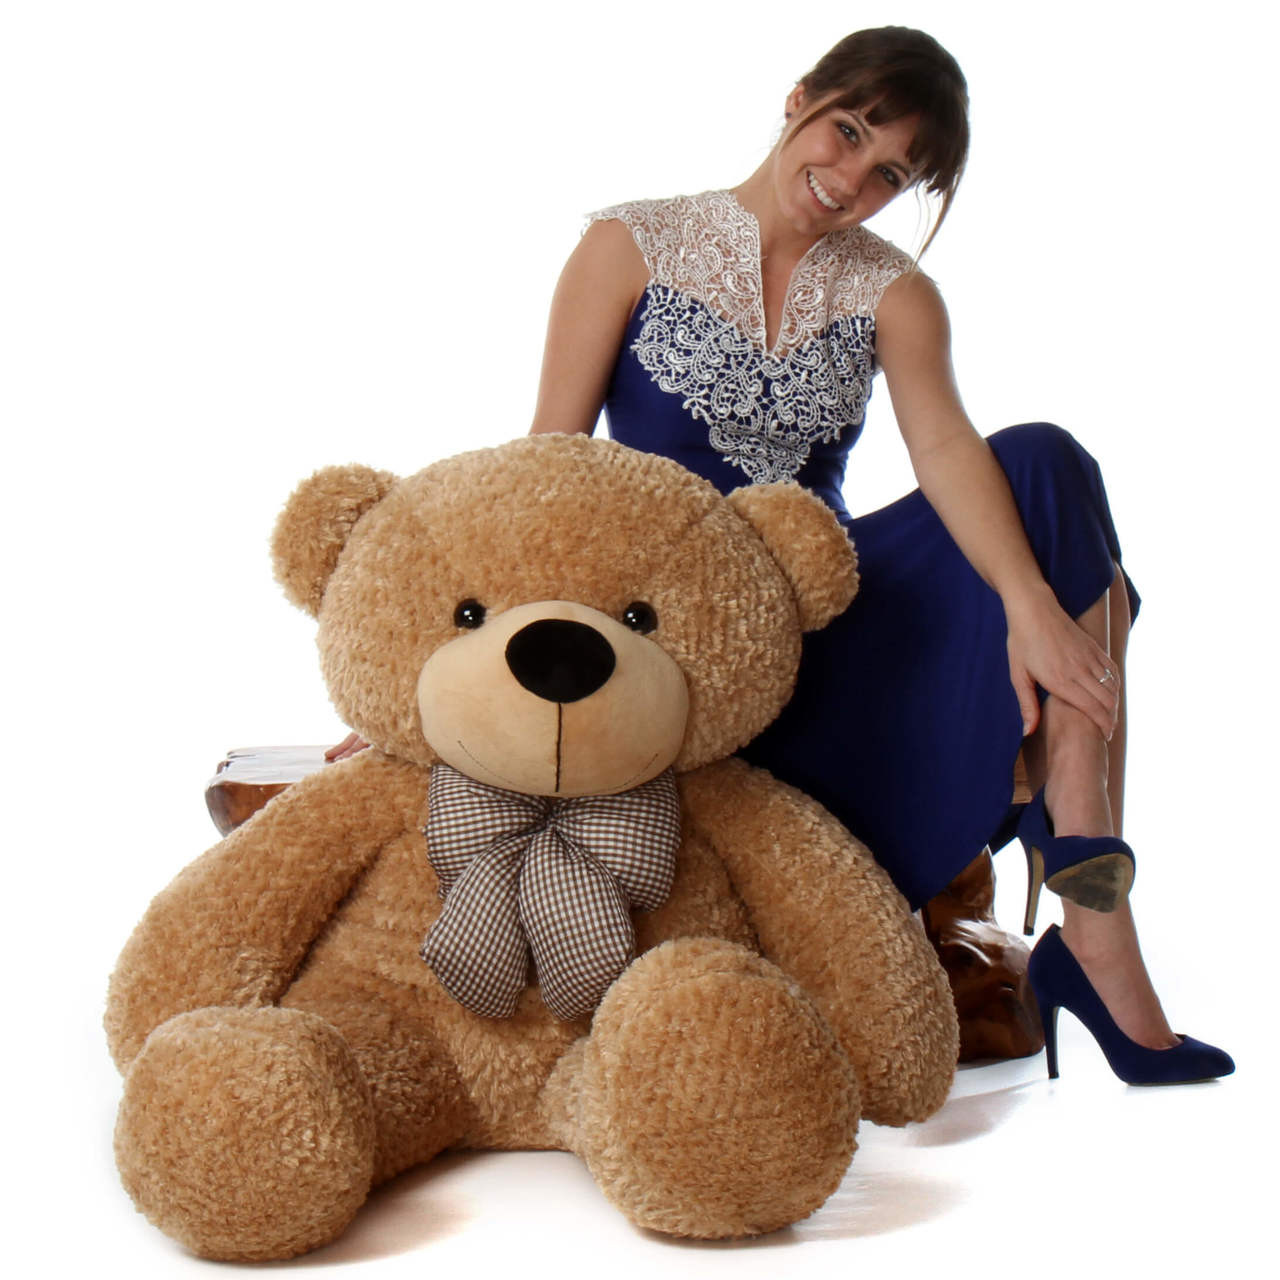 48in Life Size Amber Brown Teddy Bear Shaggy Cuddles